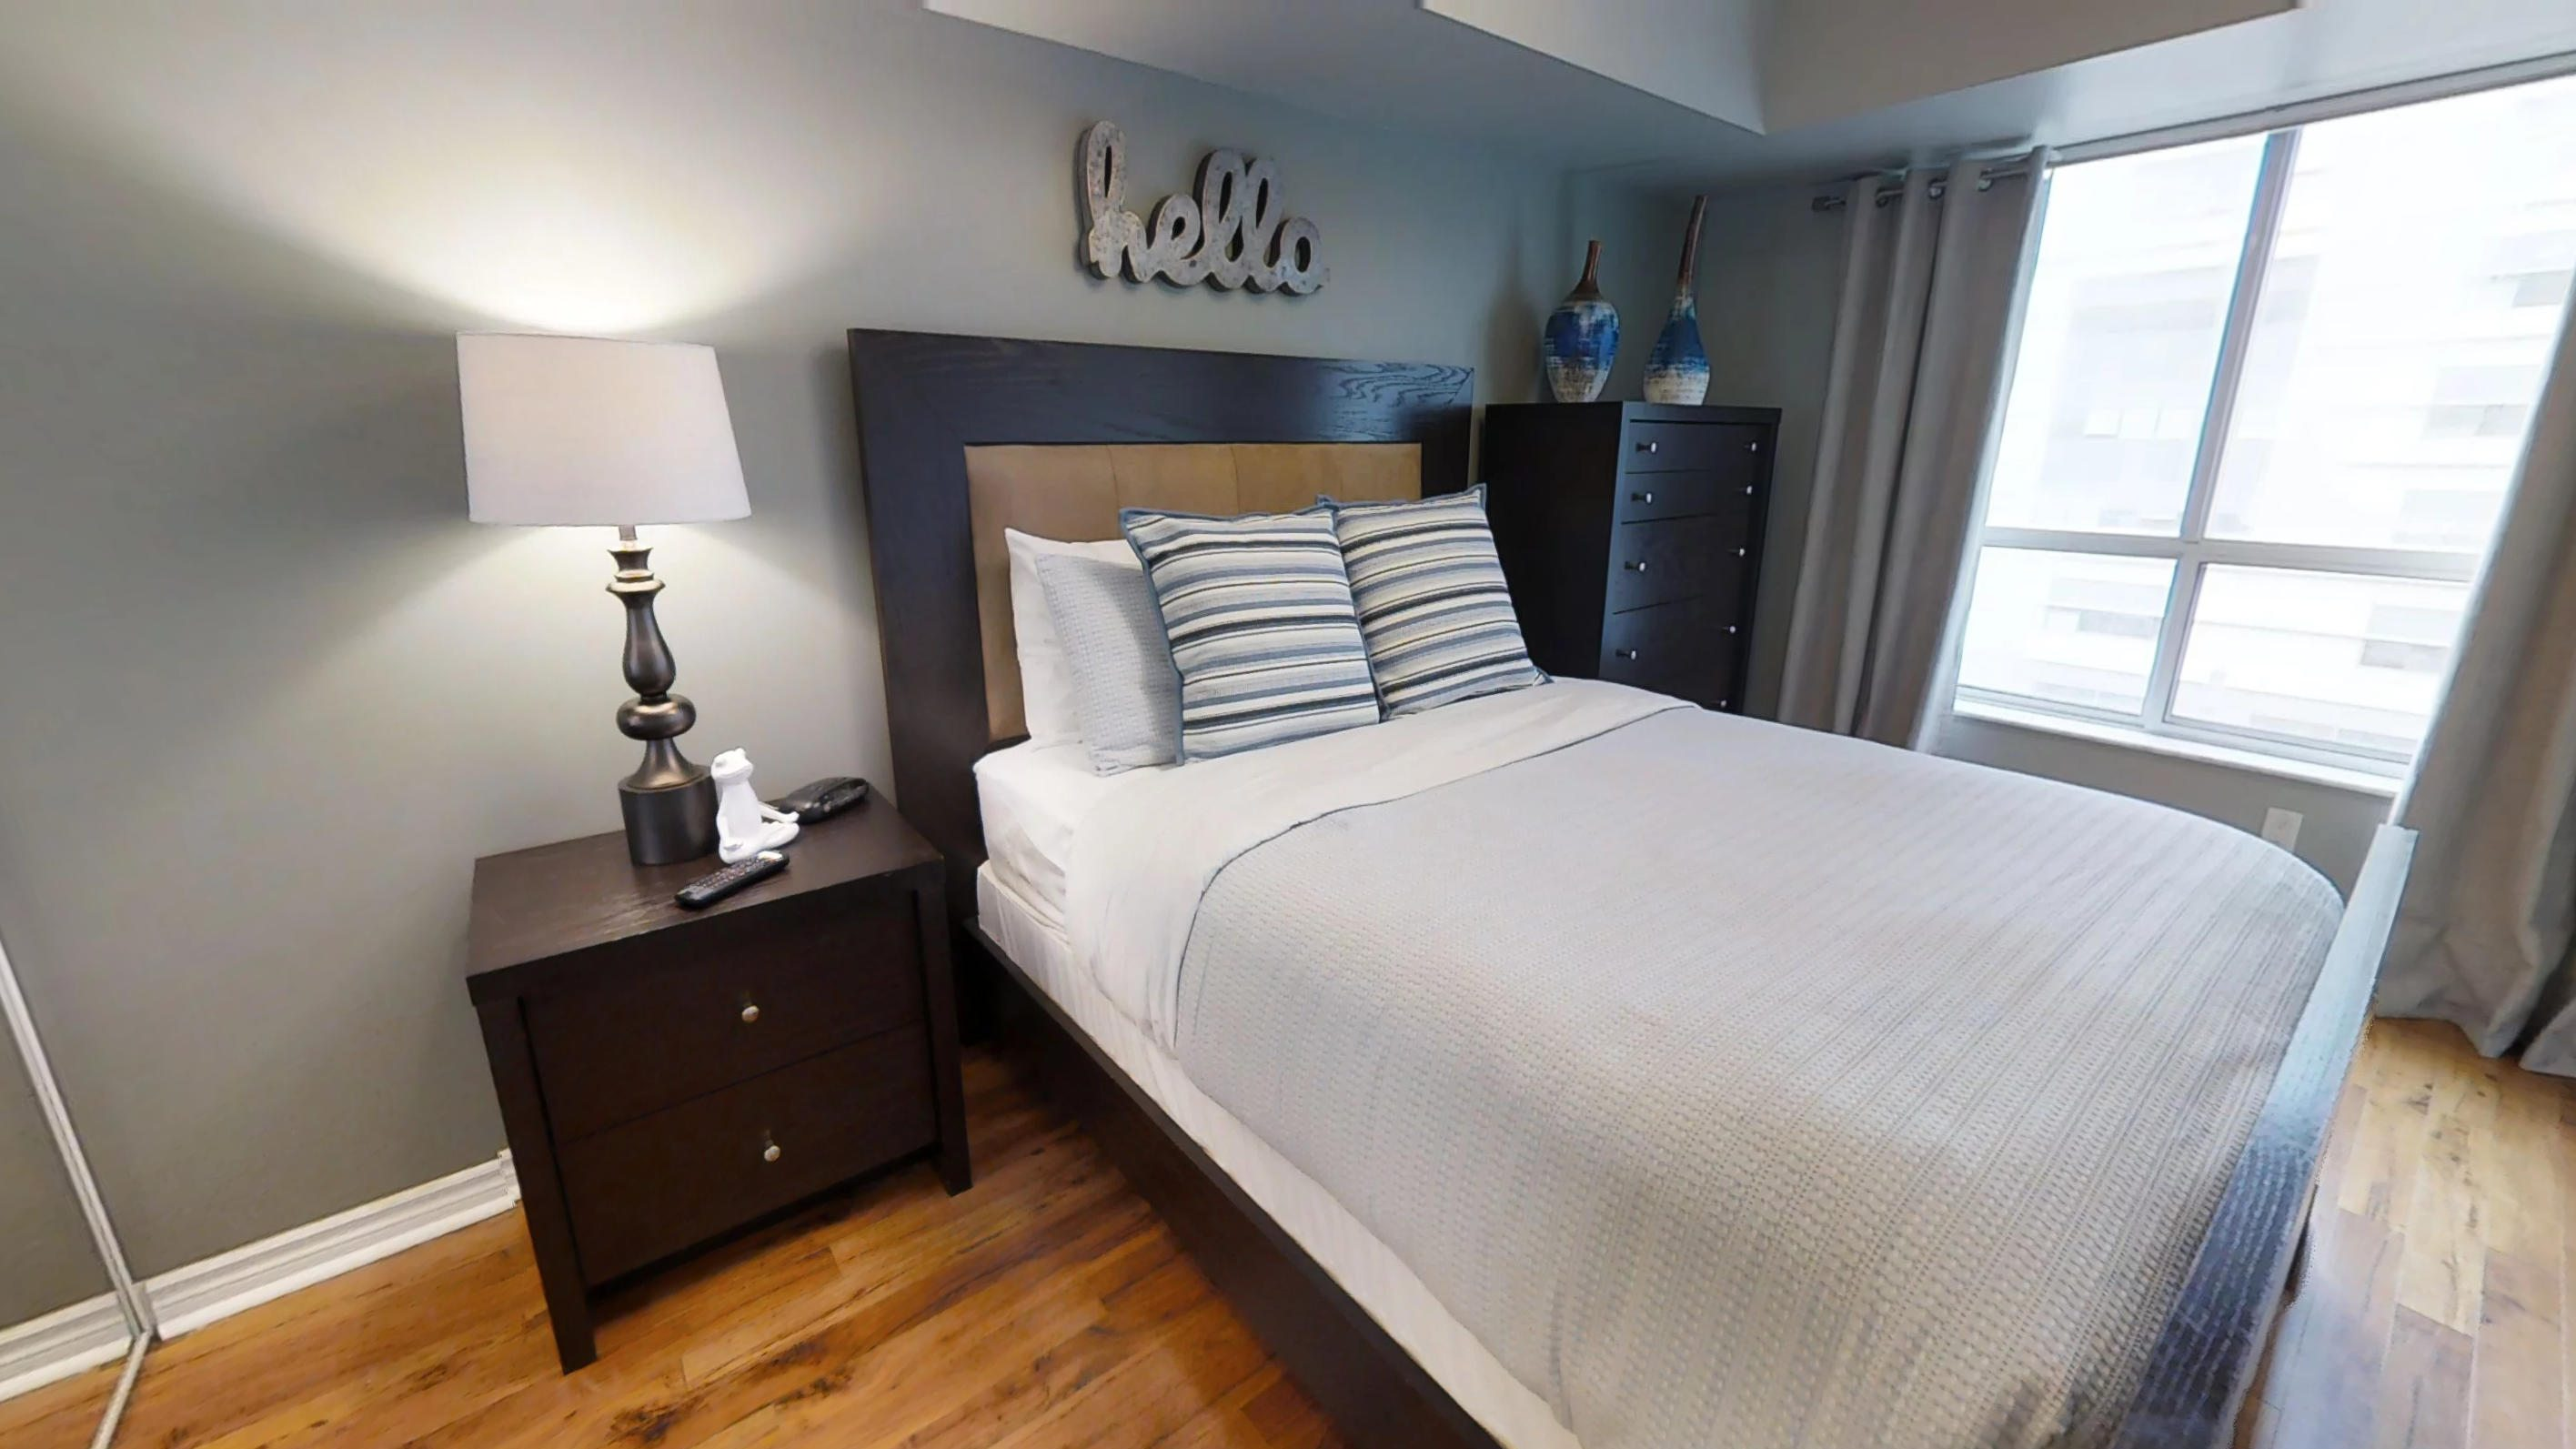 The bedroom in the toronto furnished apartment in Qwest condominiums near Toronto's Financial district, perfect for corporate housing clients